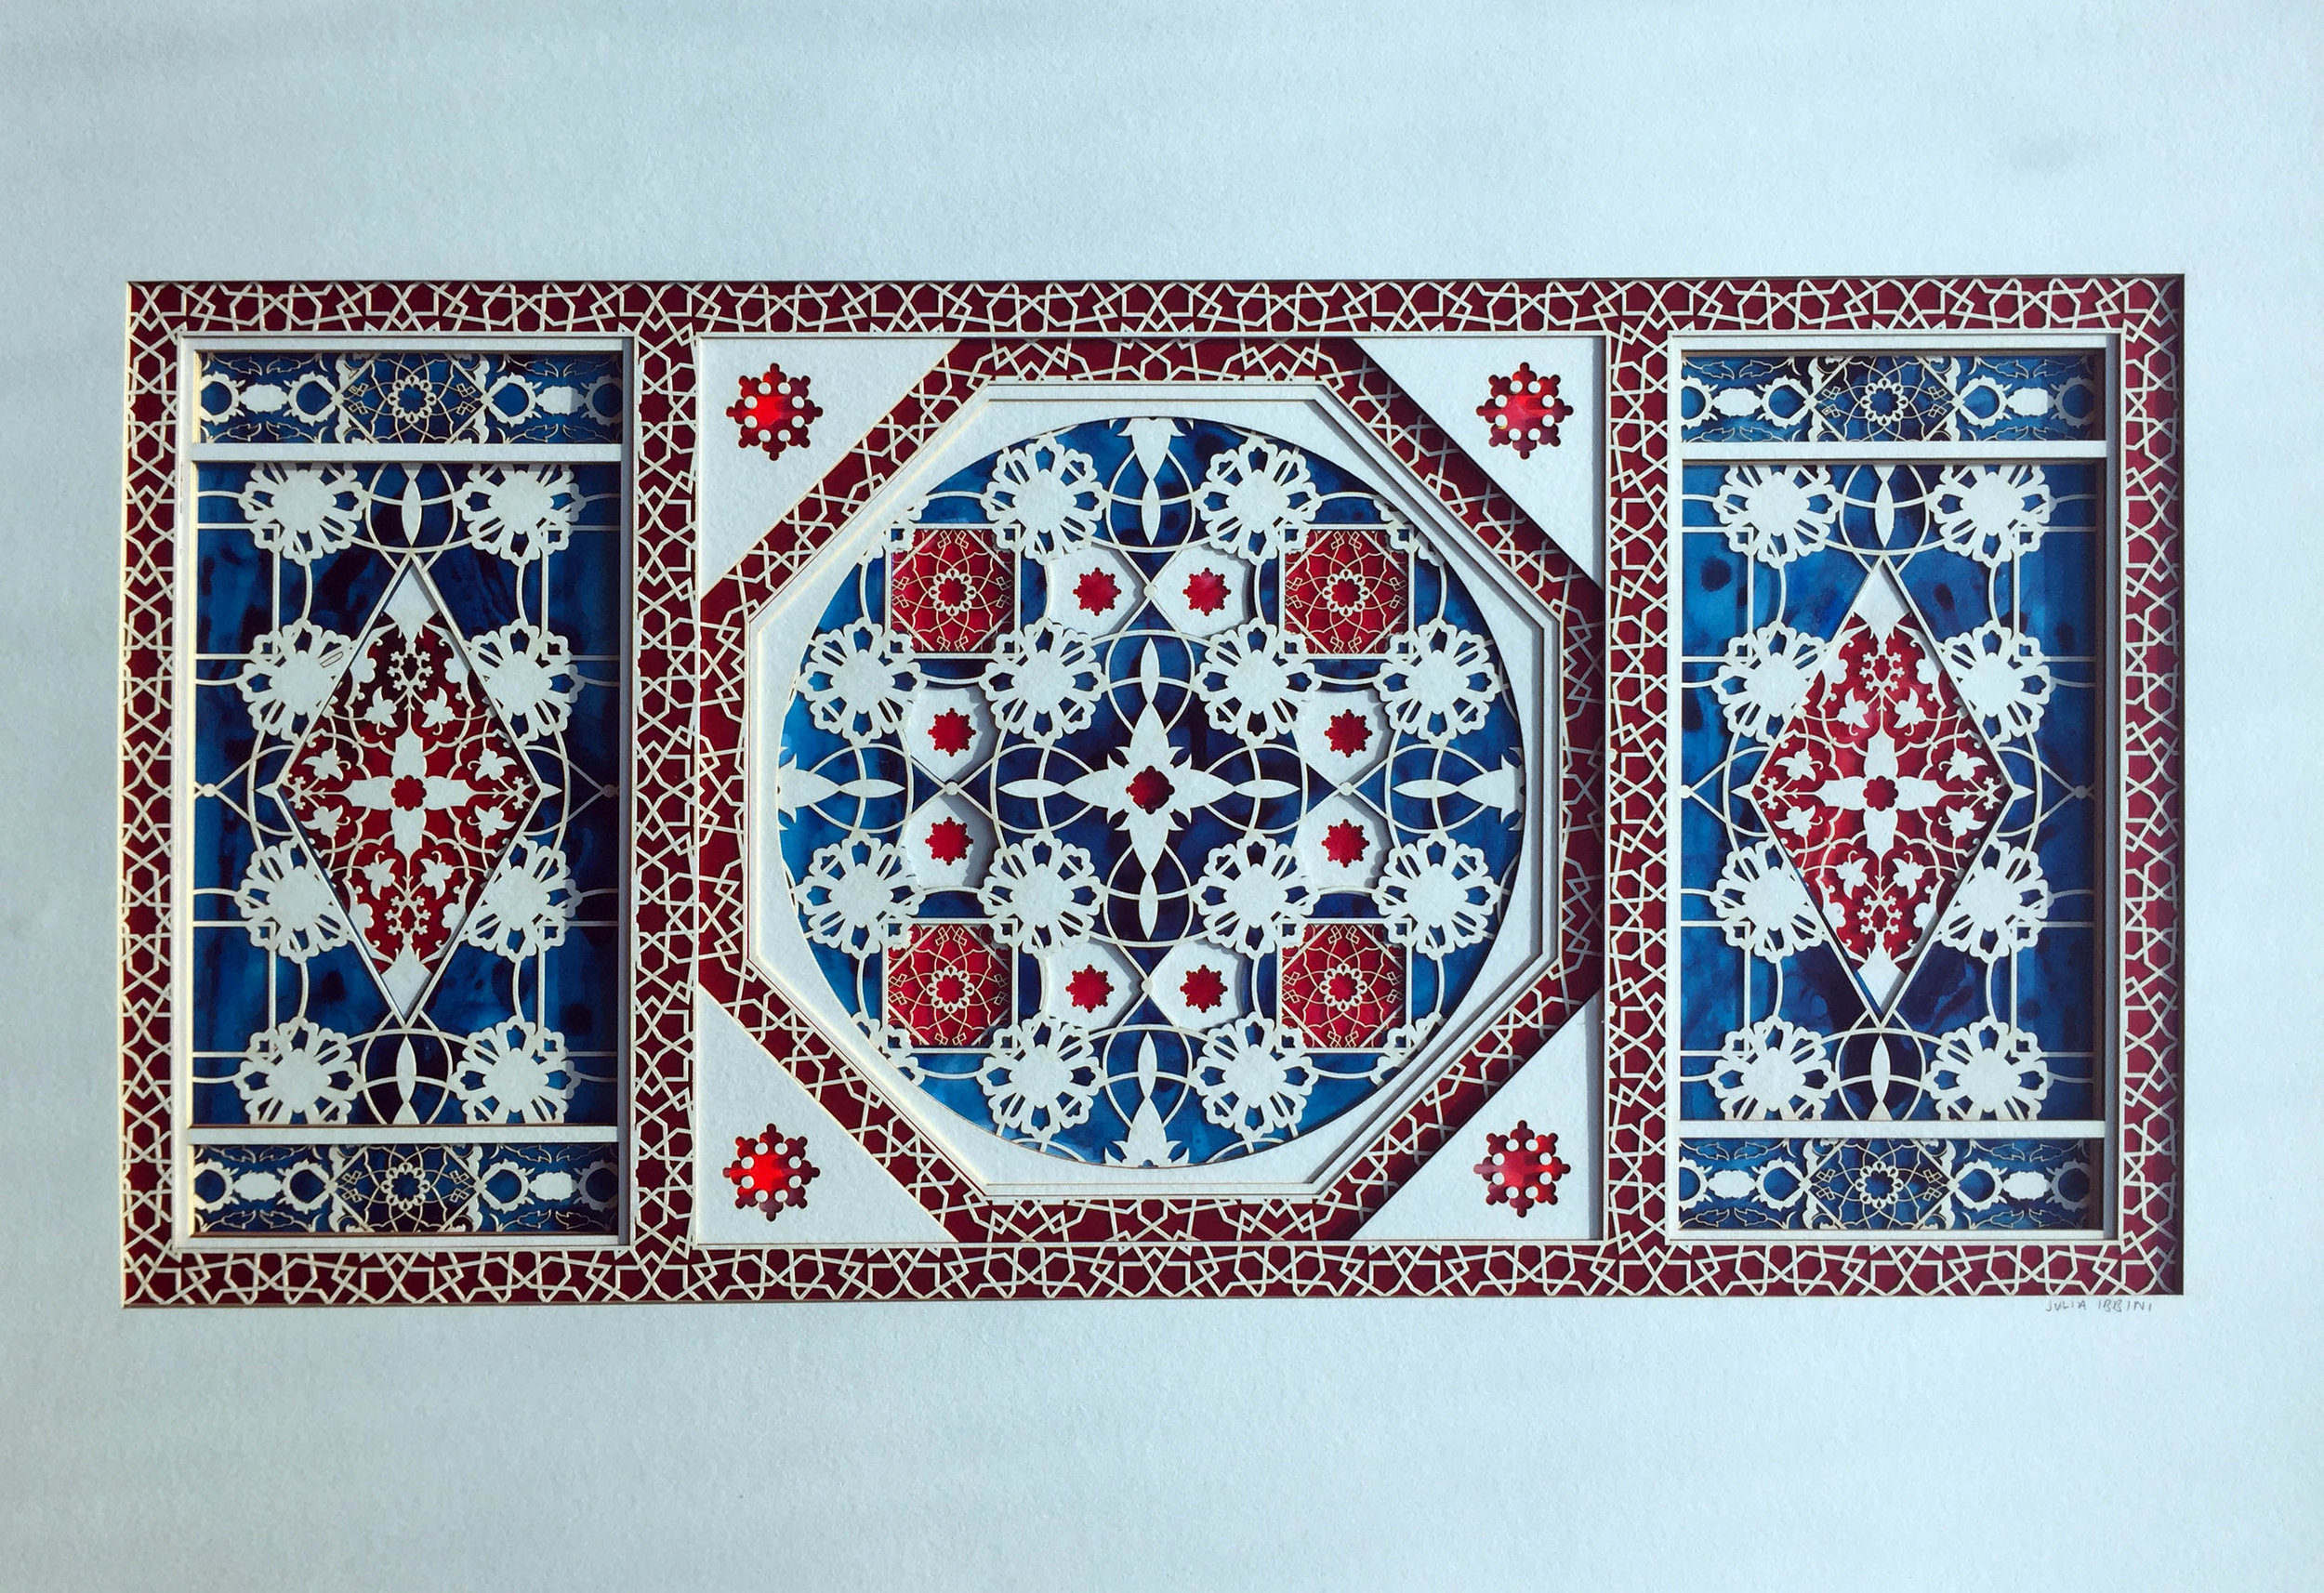 Untitled Study (Inlays in Red and Blue)